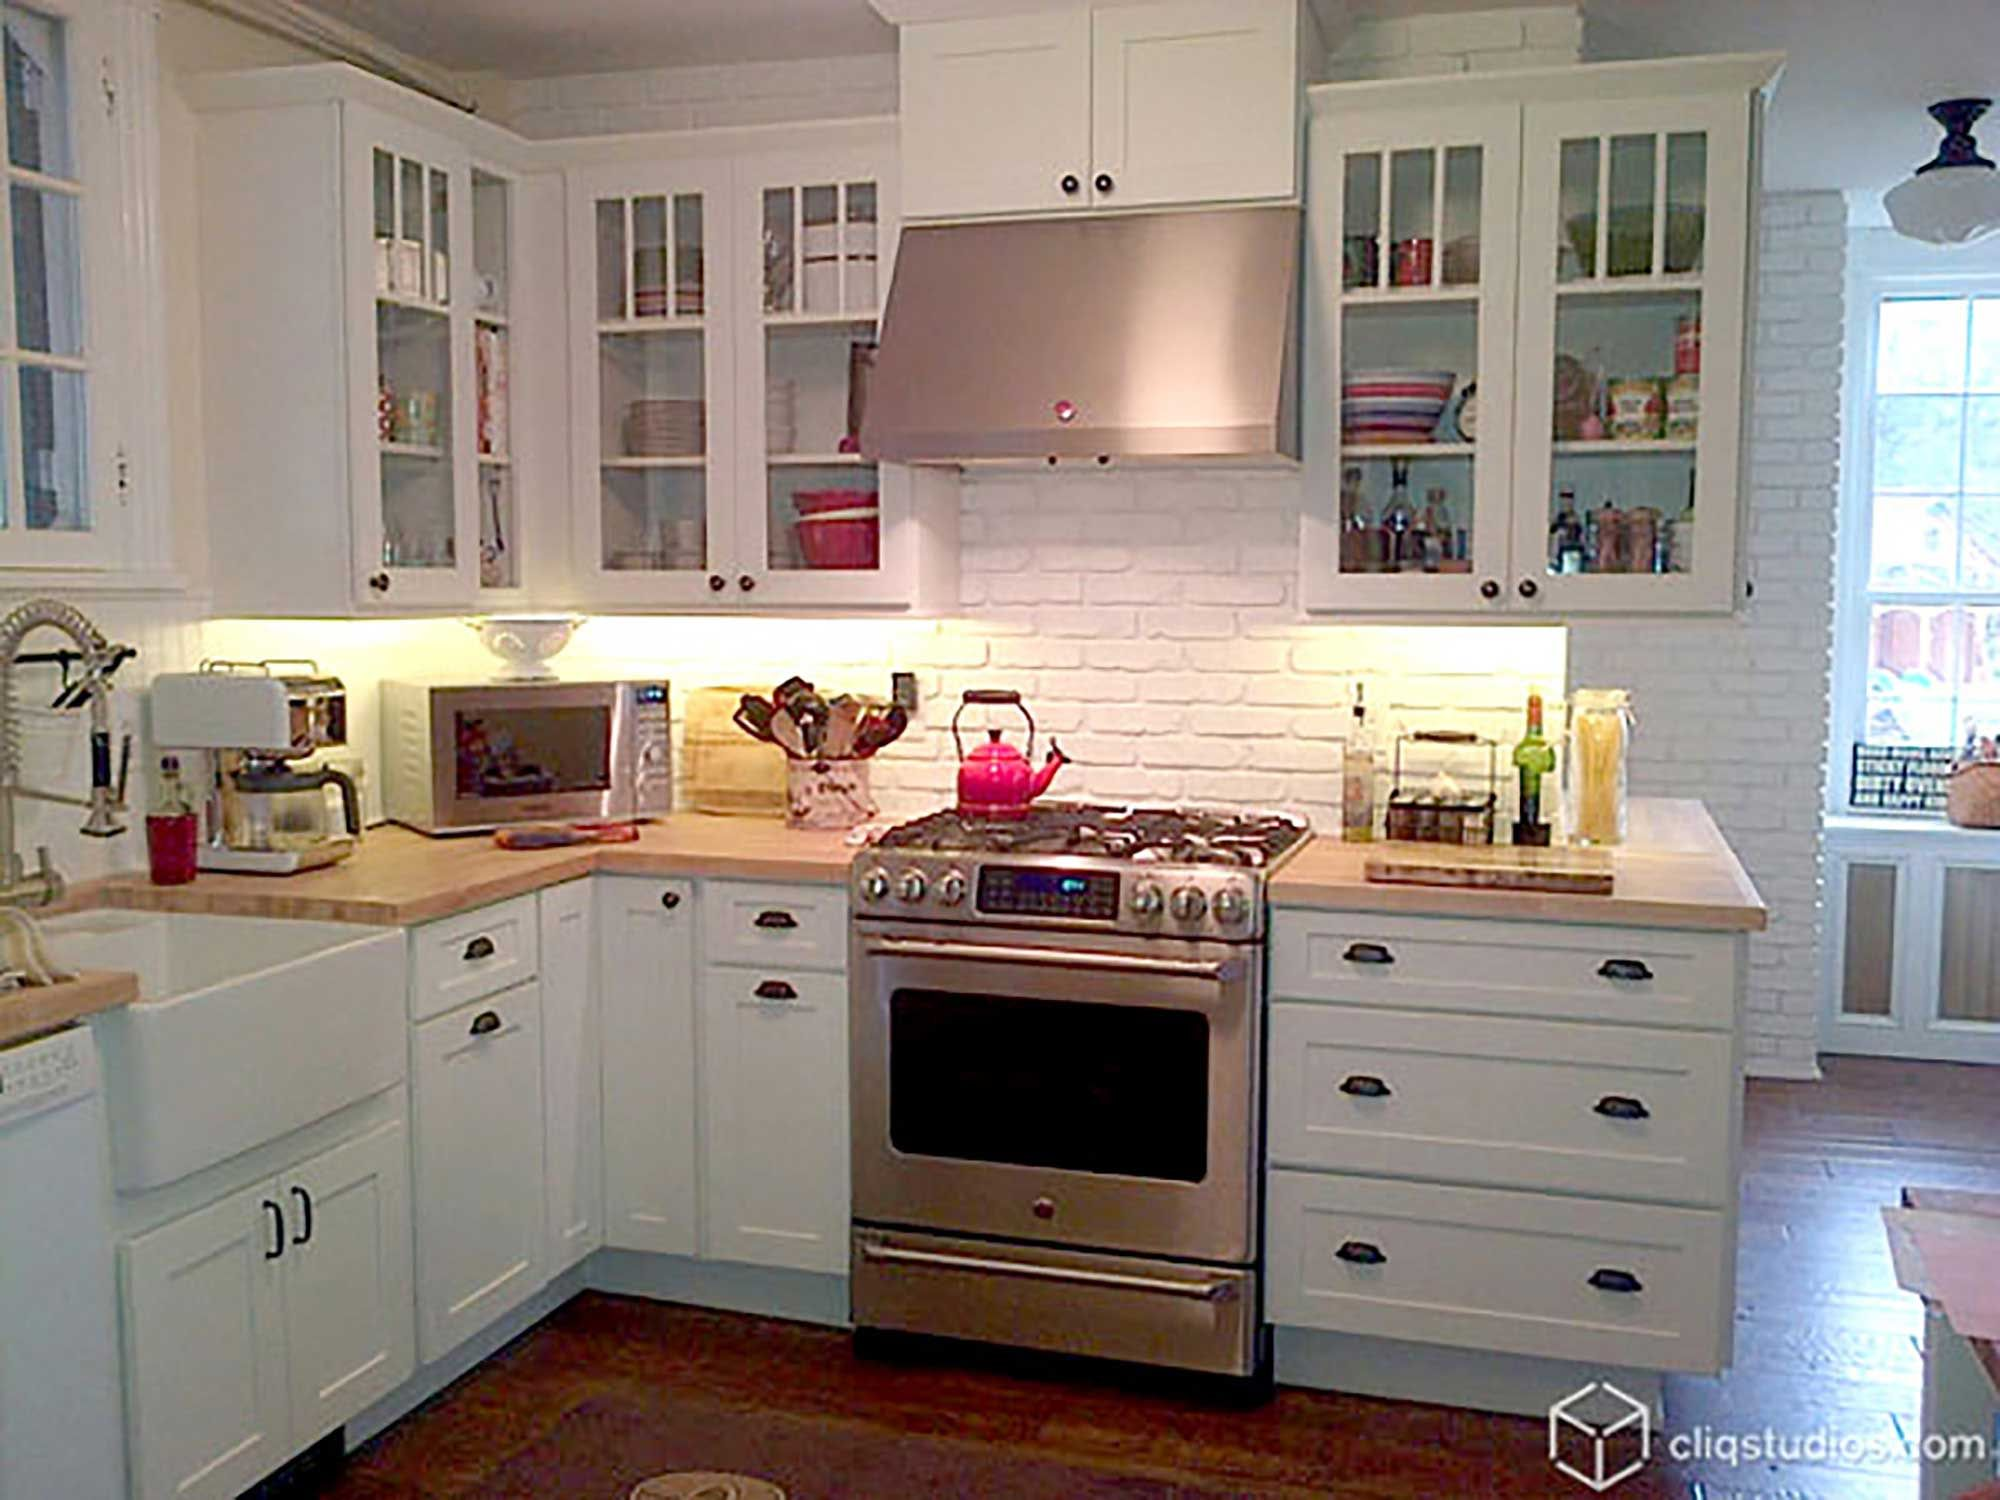 Menards Kitchen Cabinets Menards Home Improvement Topic